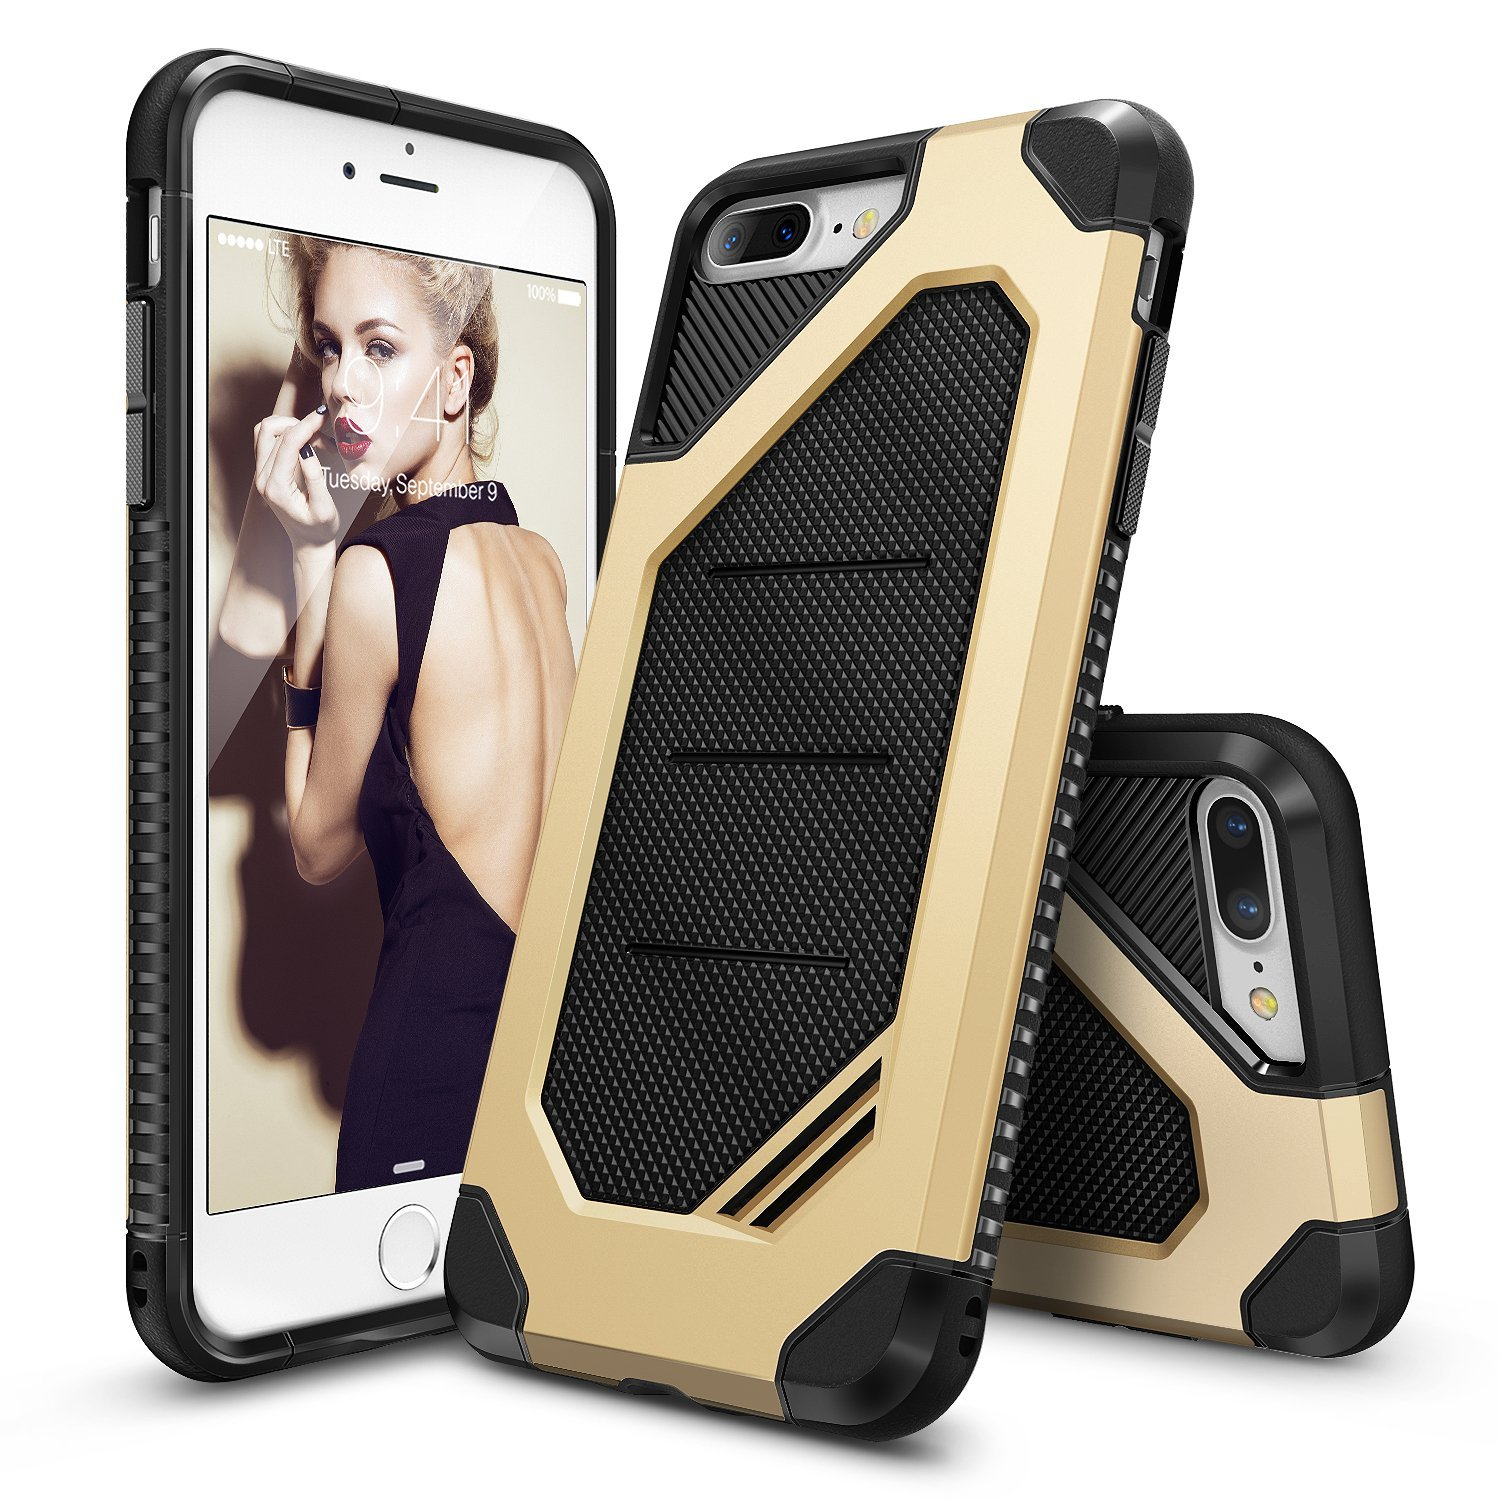 Ringke Double Layer Armor Tough Skal till iPhone 7 Plus - Gold